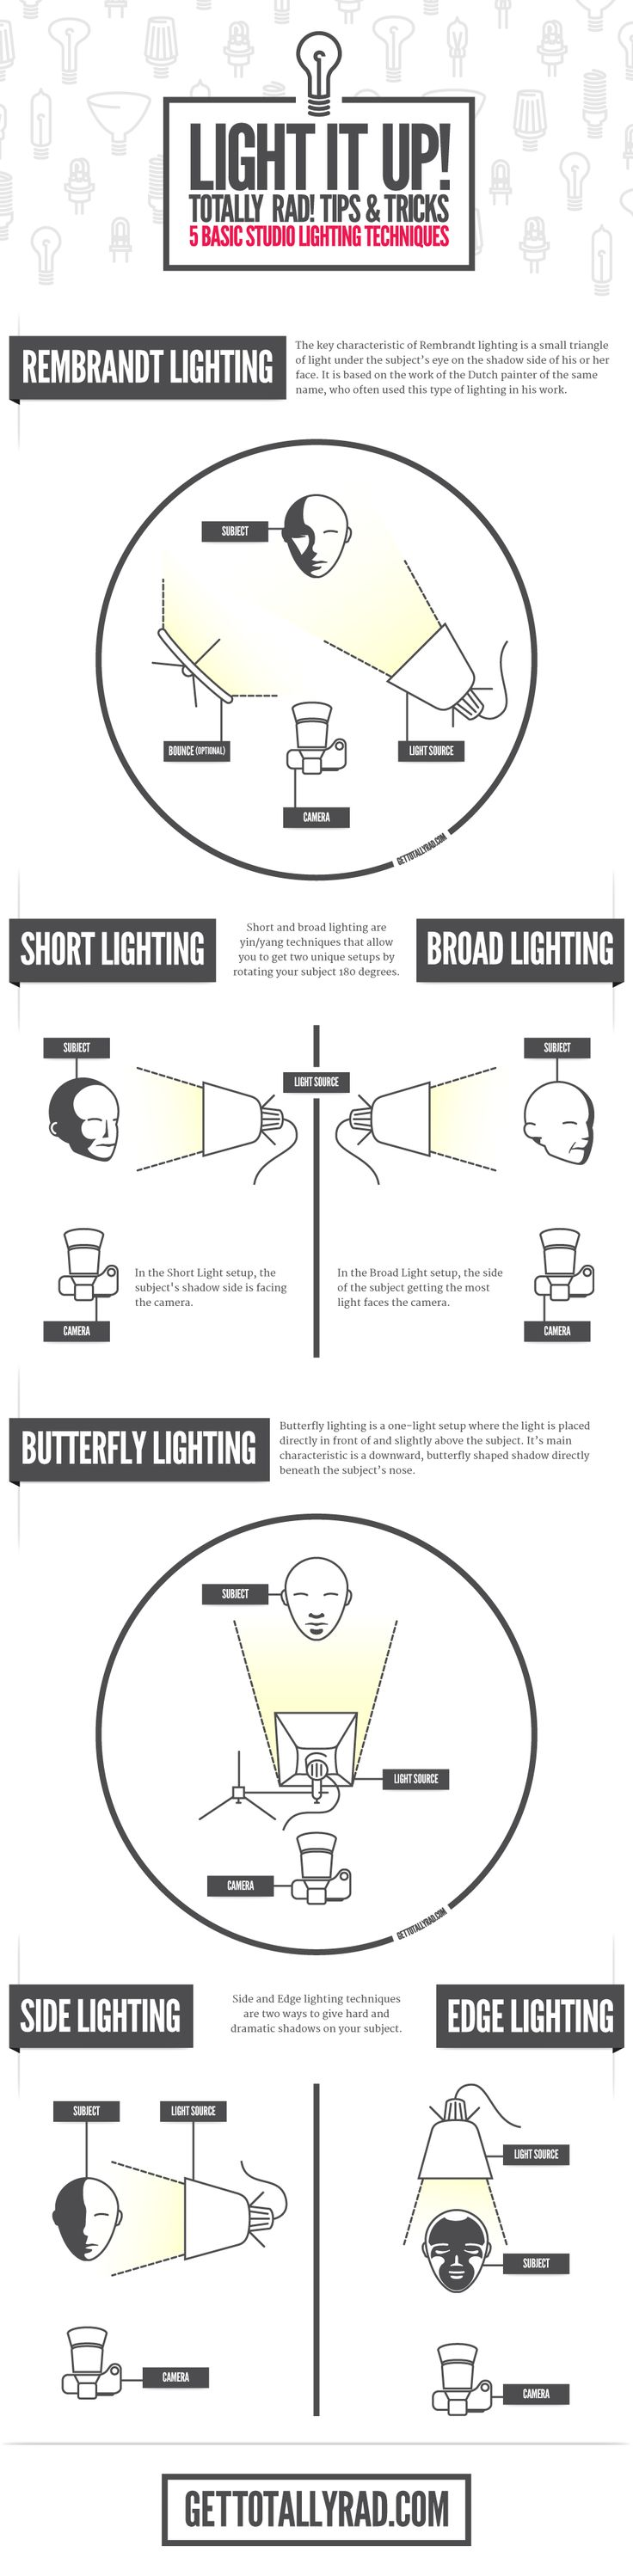 Infographic: Light it up! 5 Basic Lighting Techniques